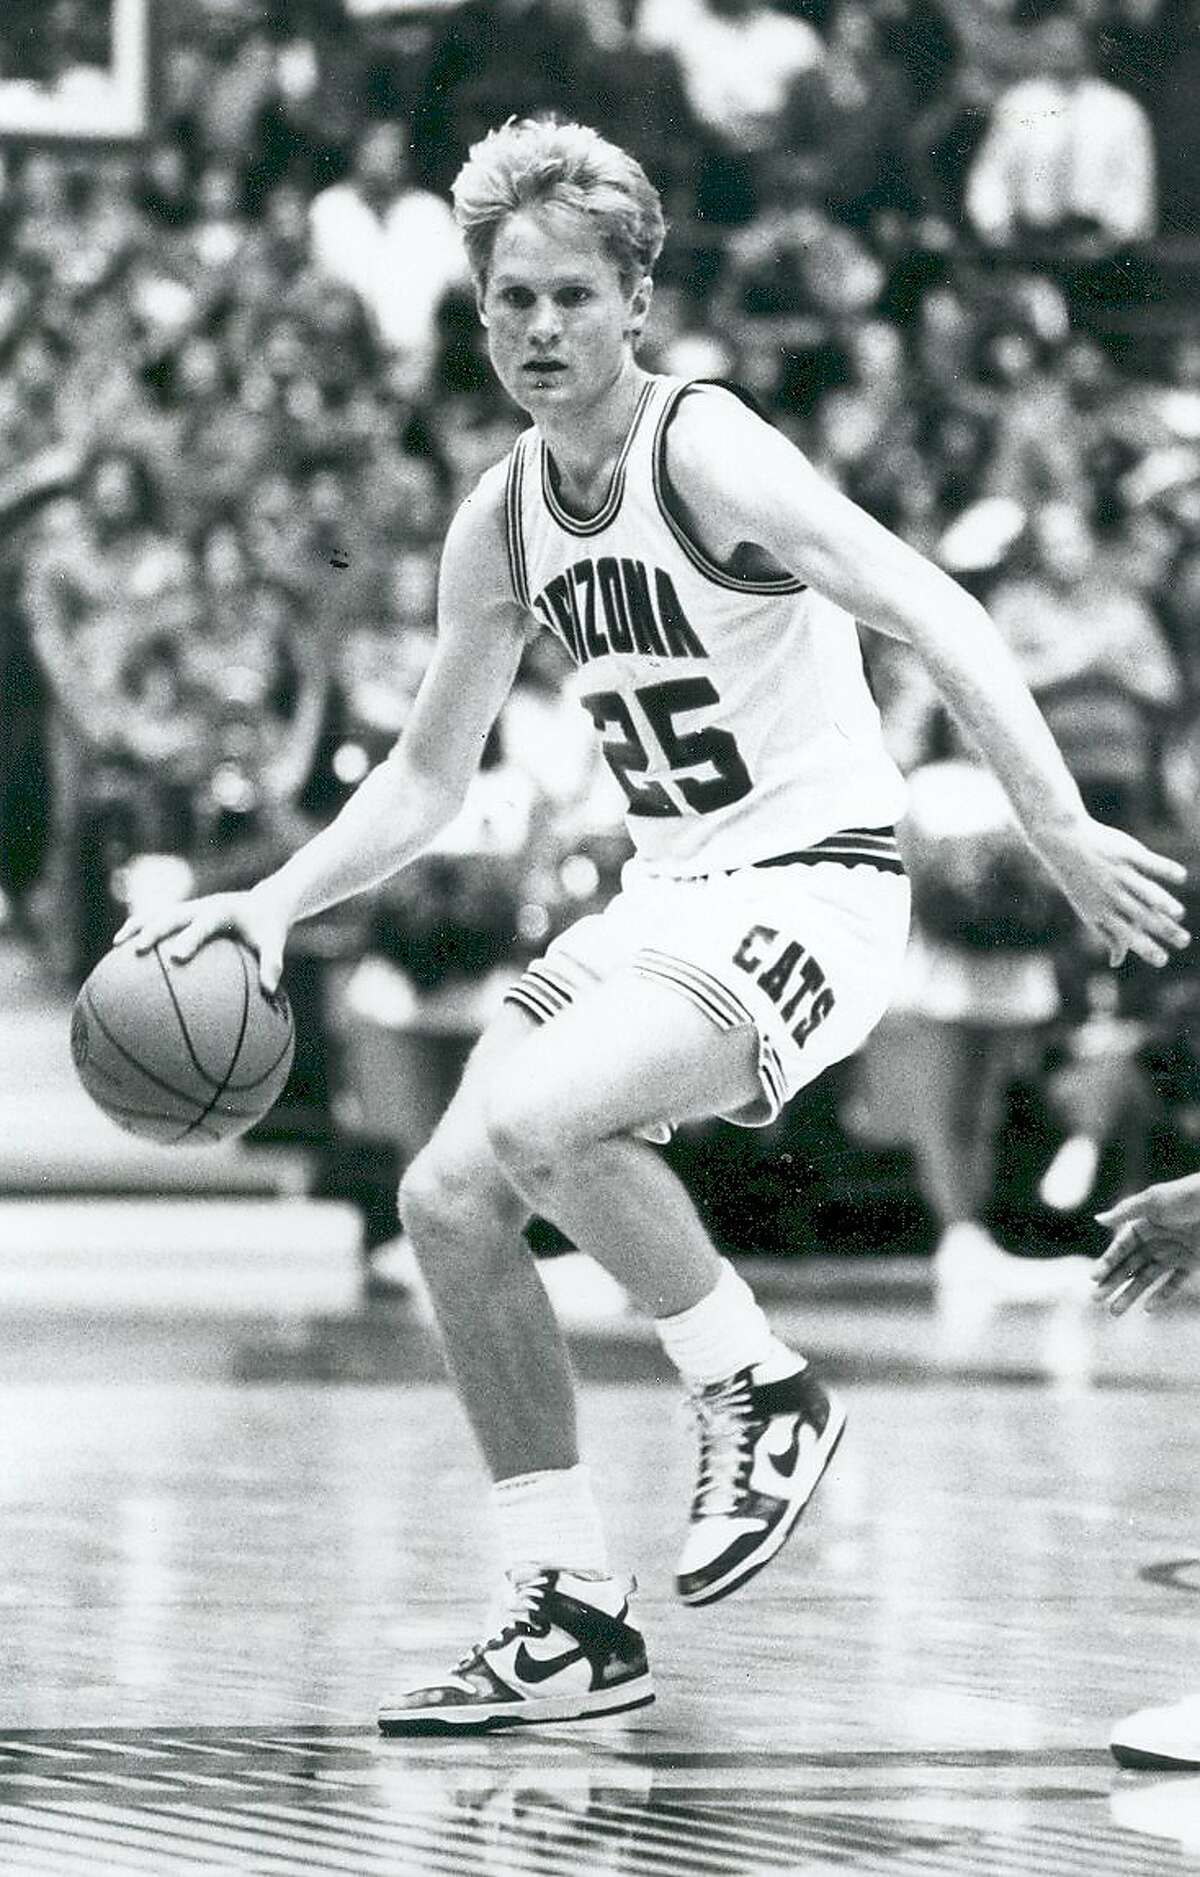 TUCSON, AZ - CIRCA 1987: Steve Kerr, #25 guard of the University of Arizona Wildcats men's basketball team drives the ball to the basket at the McKale Center in Tucson, Arizona. (Photo by Arizona/Collegiate Images/Getty Images)